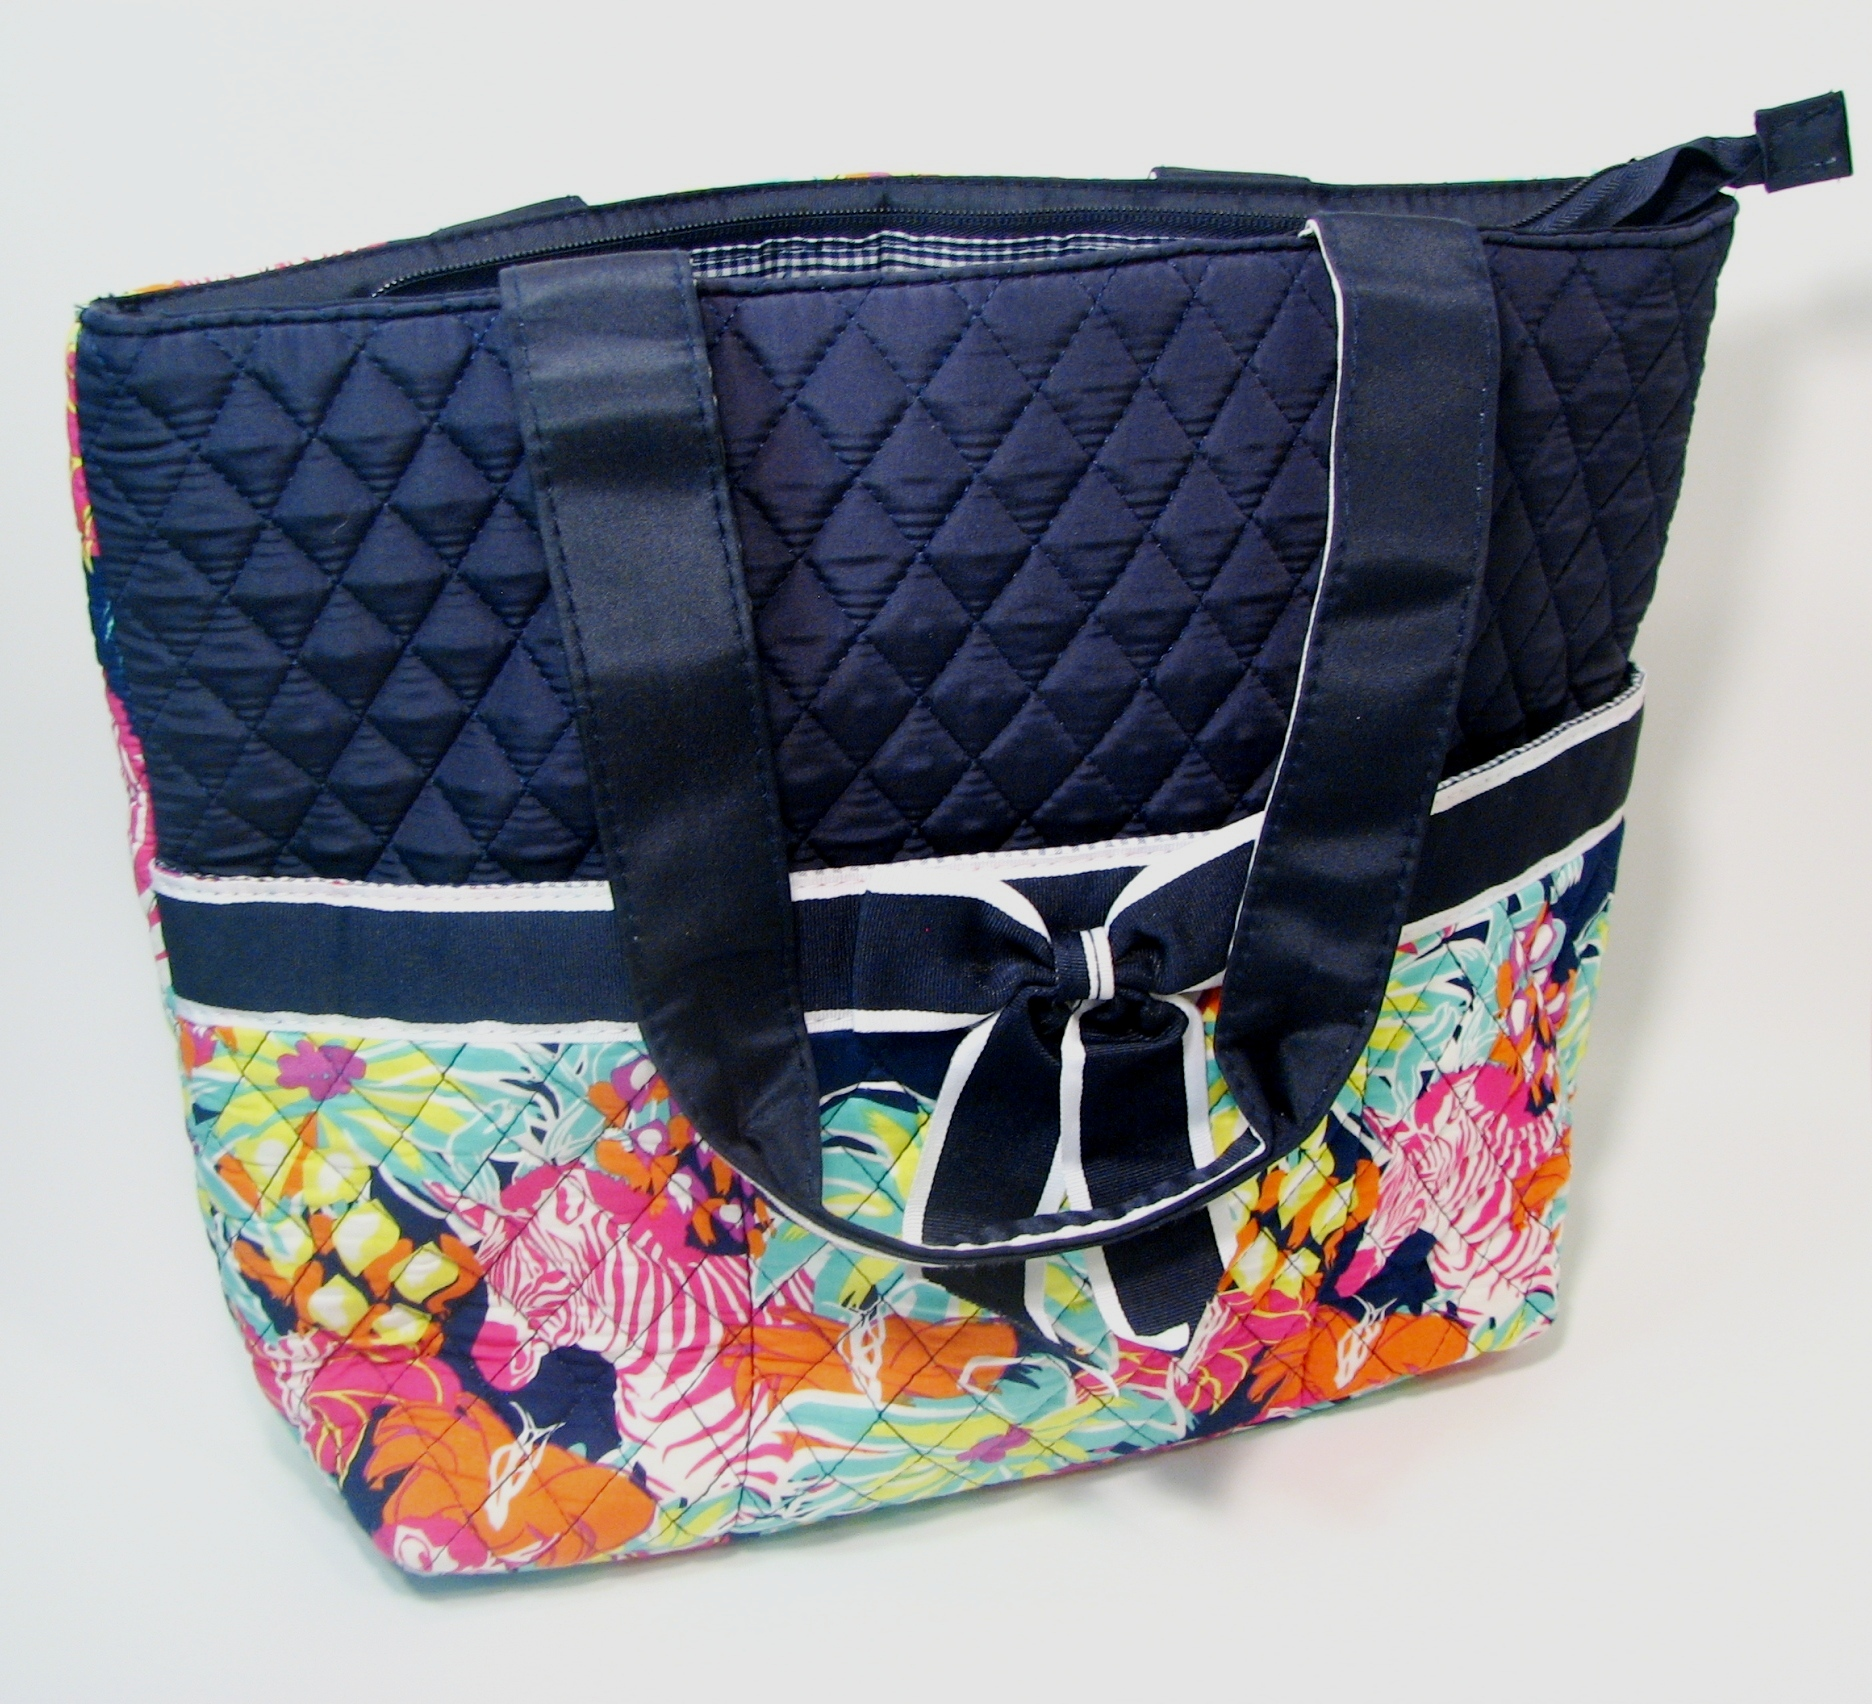 Fiore 6747.Ngil Diaper Bag Set Three Piece Quilted Bag New